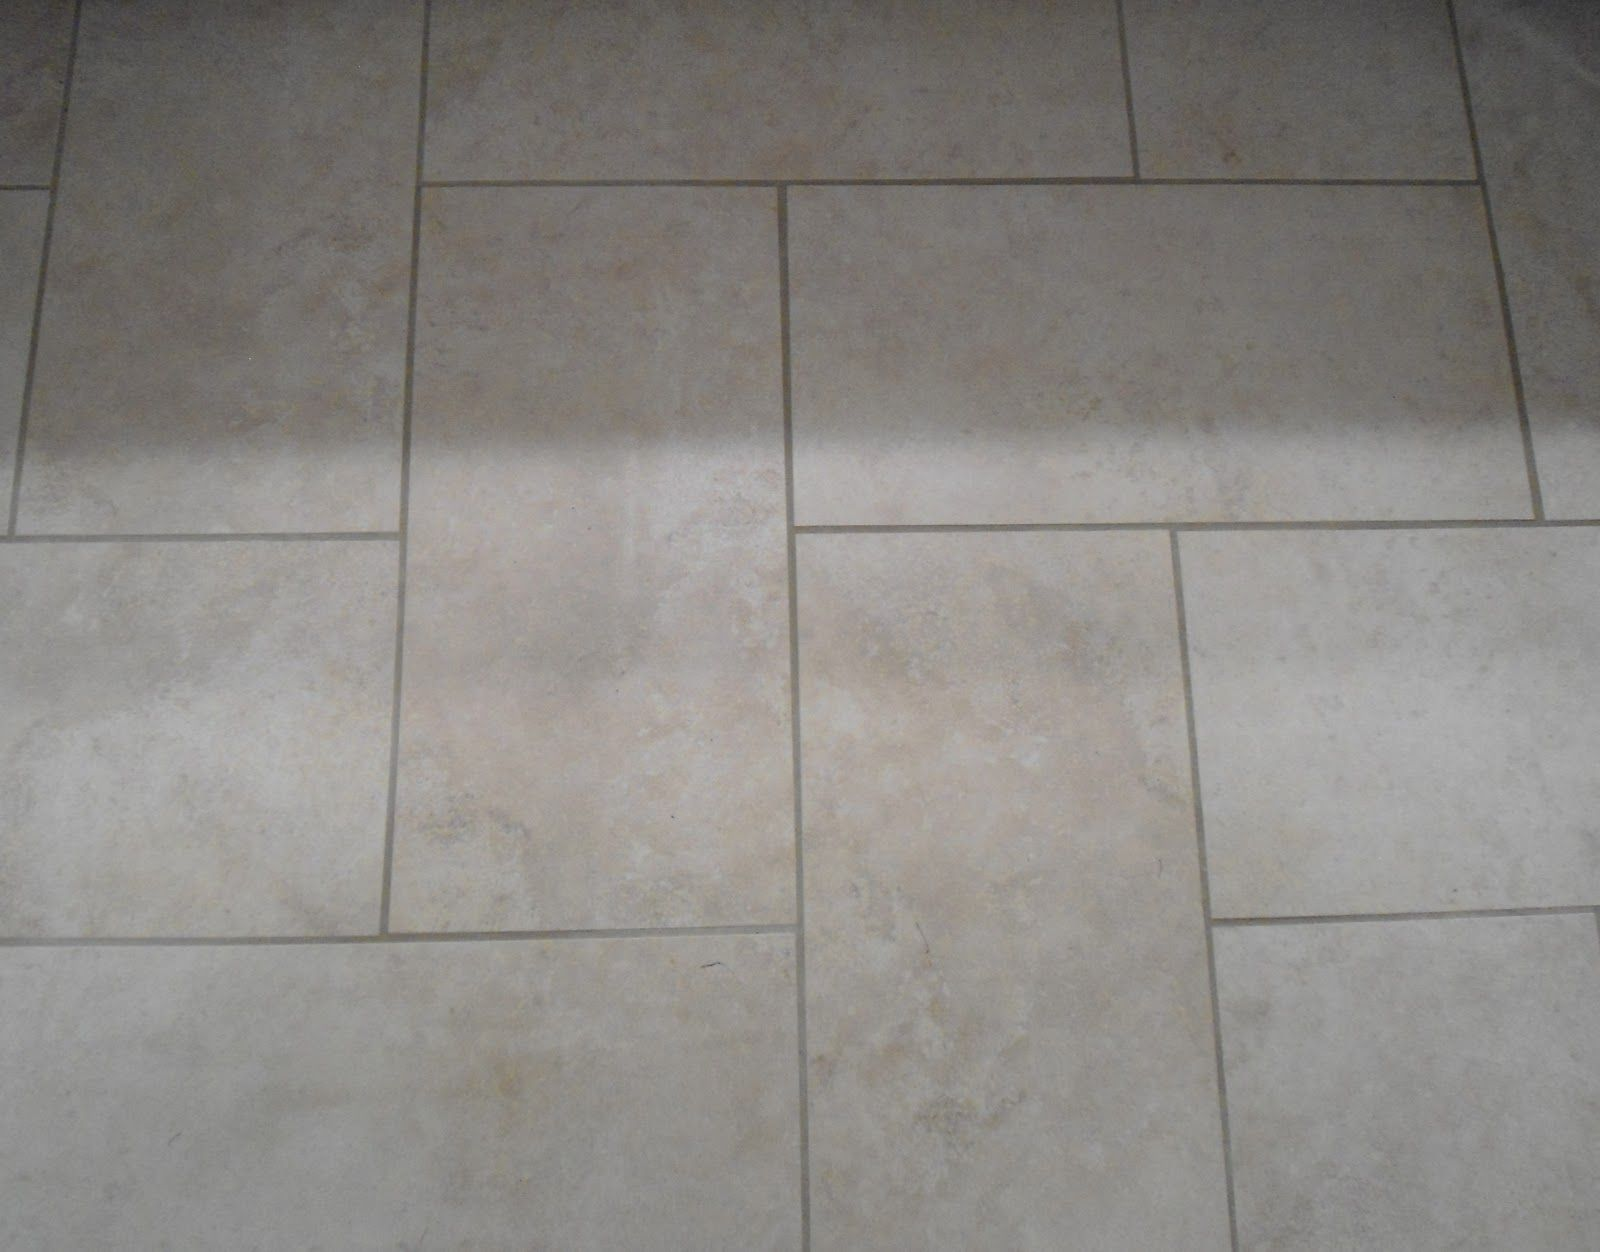 Floor Tile Patterns Kitchen Pictures Of Different Tile Patterns 12x 24 Plank Tiles By